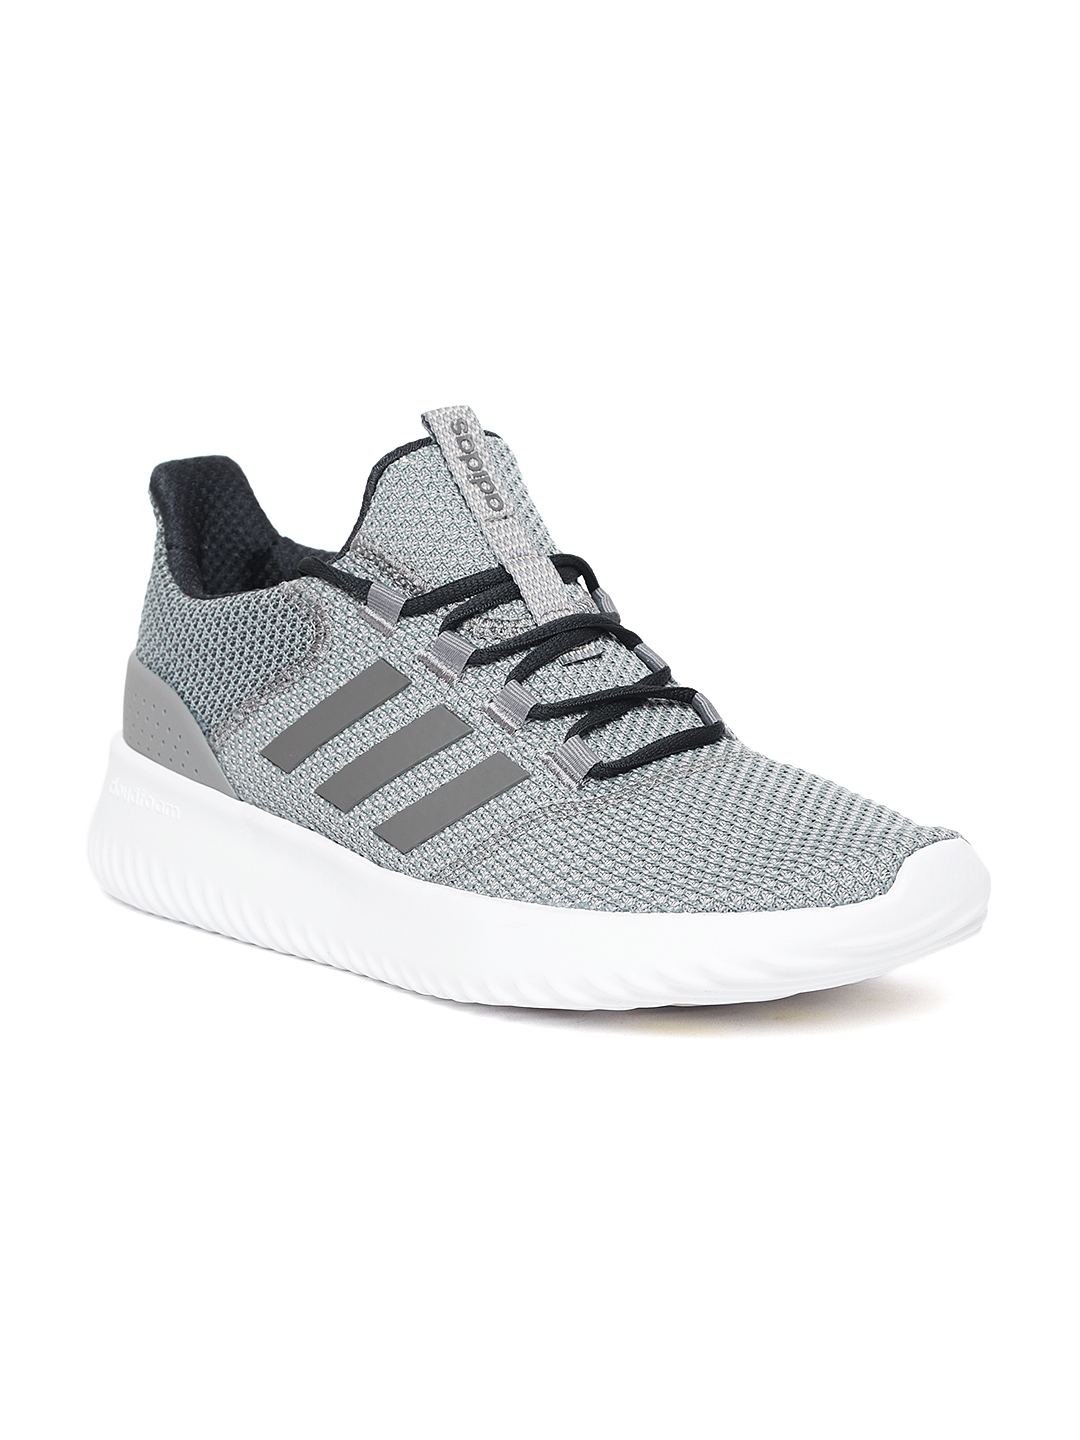 adidas cloudfoam for men